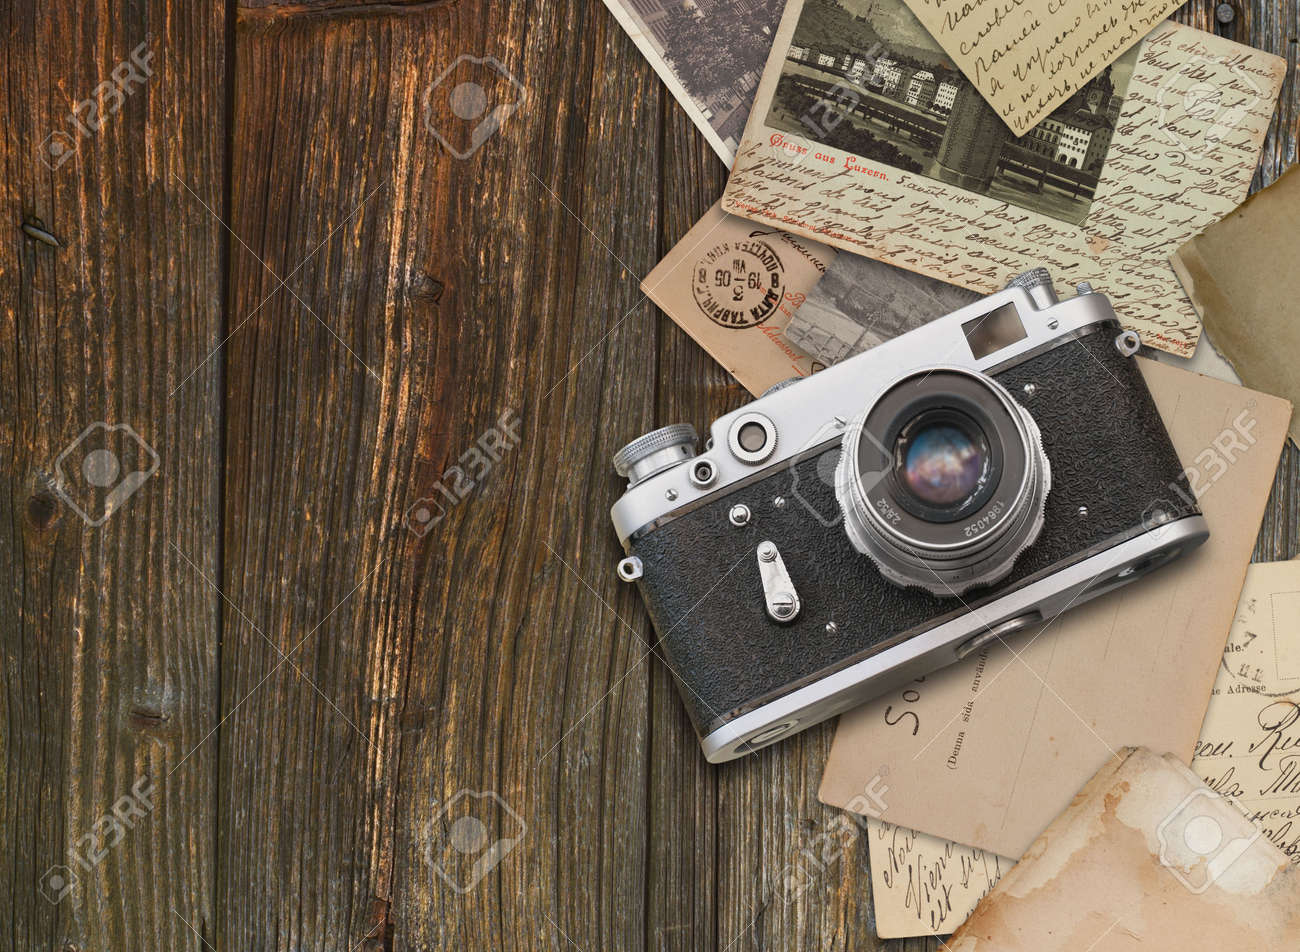 Vintage >> Vintage Camera On Wooden Background Stock Photo Picture And Royalty